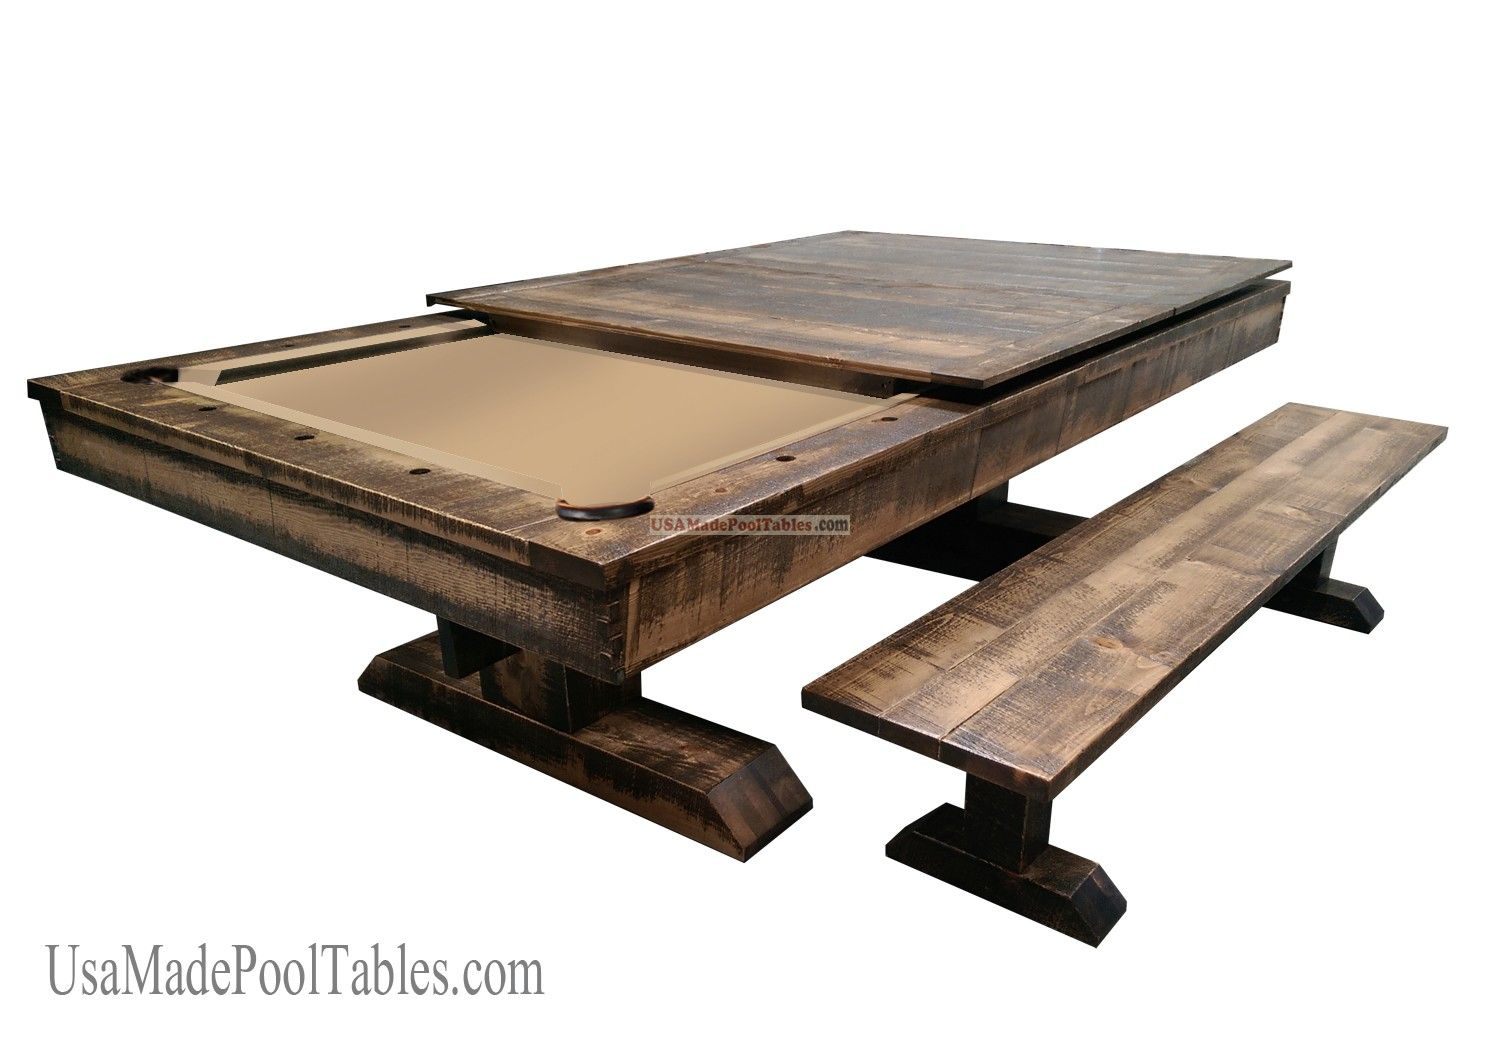 RUSTIC POOL TABLE Future Pinterest Pool table Game rooms